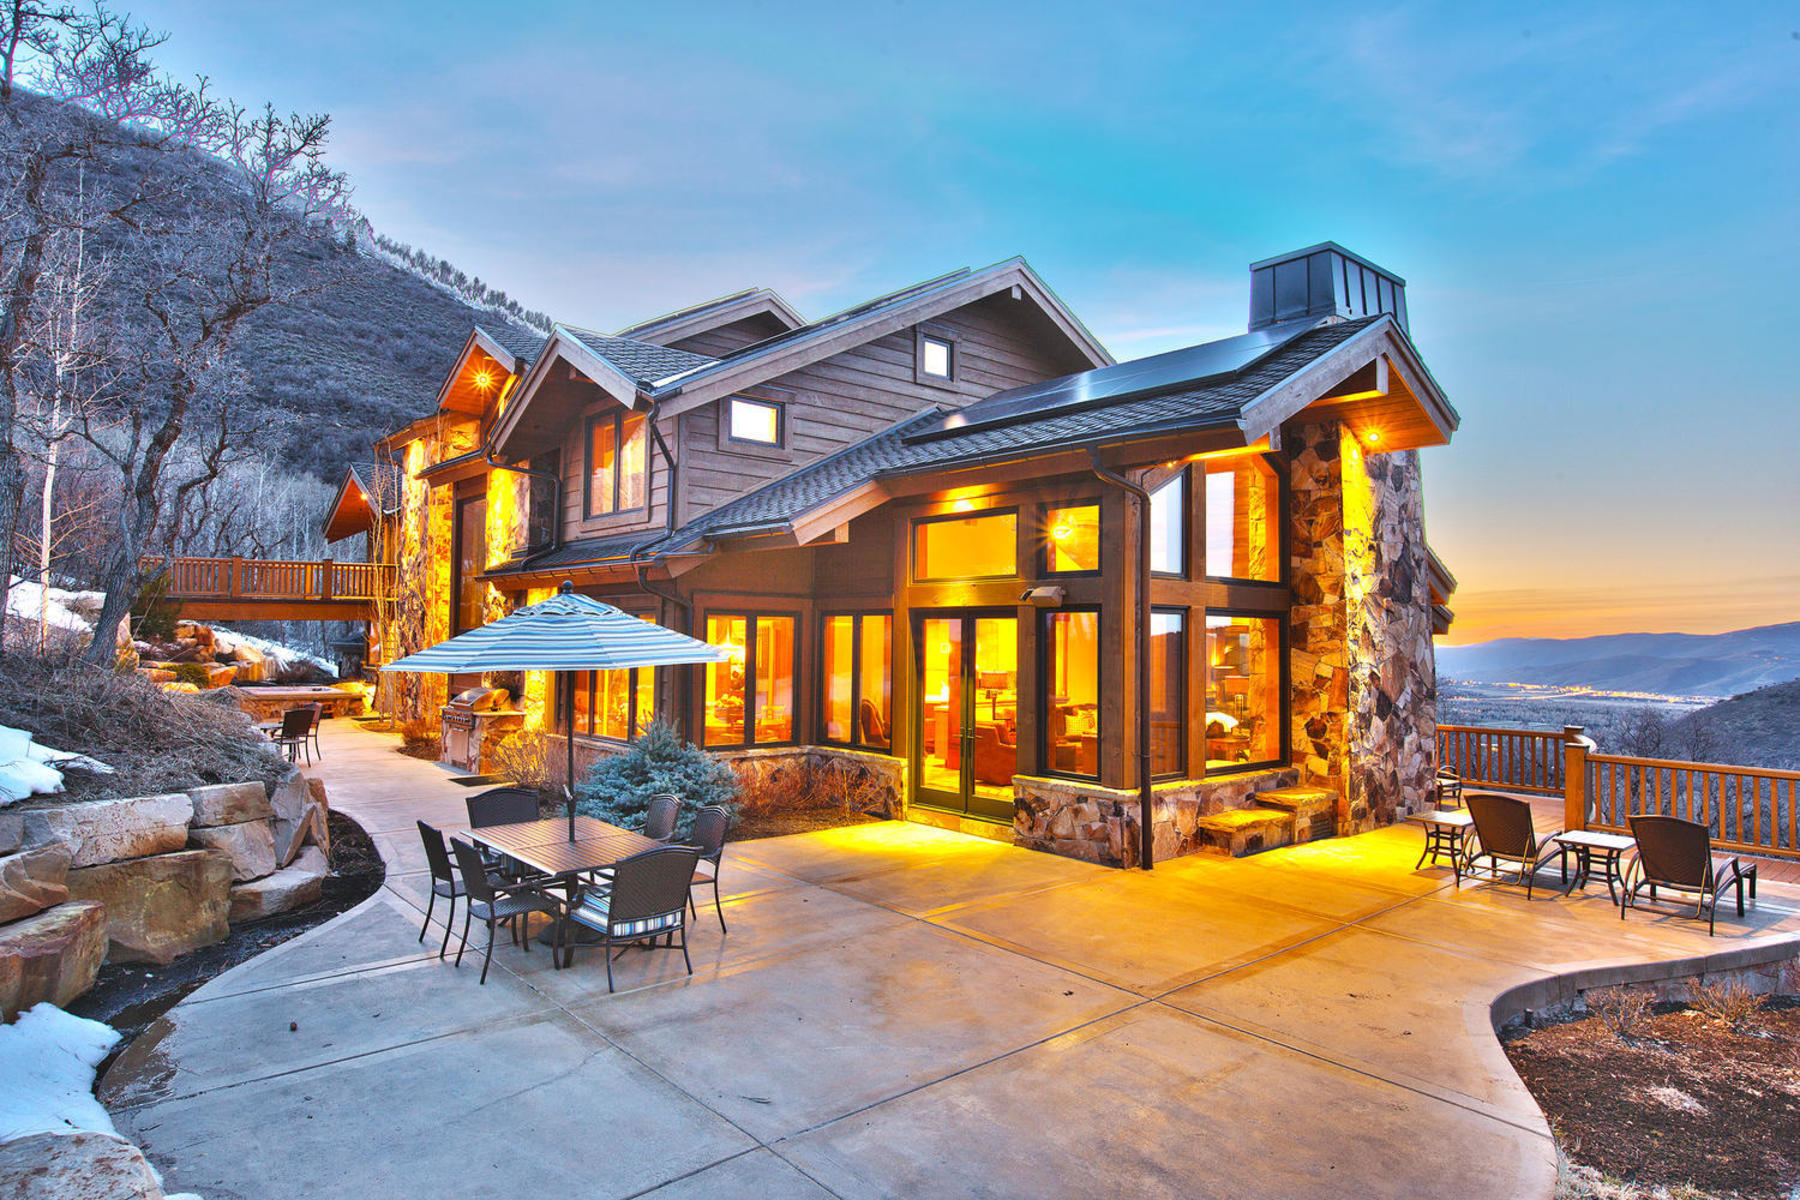 Casa Unifamiliar por un Venta en Timeless Elegance at the Top of Aspen Springs 25 Canyon Ct Park City, Utah, 84060 Estados Unidos